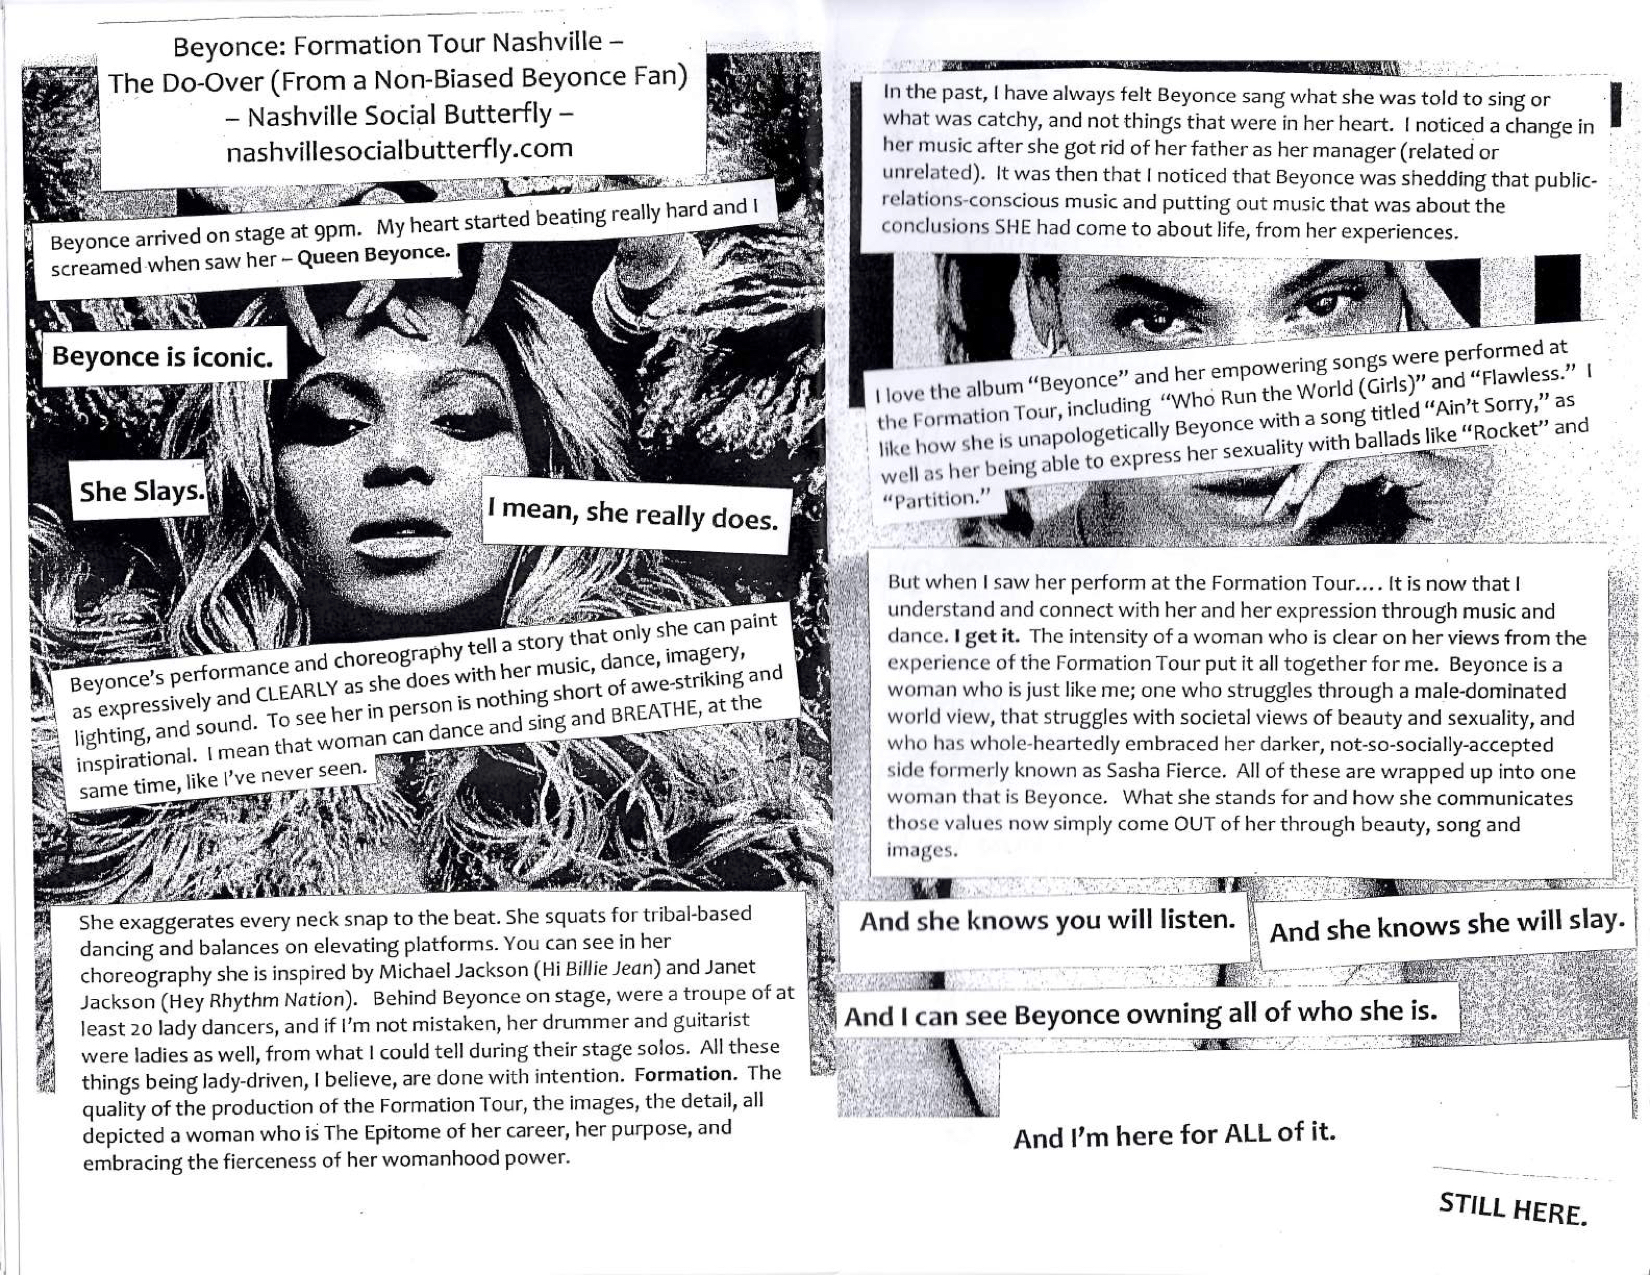 Across pages 3 and 4 is a review of Beyonce's Formation tour performance in  Nashville. The background of page three is an image of pop superstar  Beyonce.